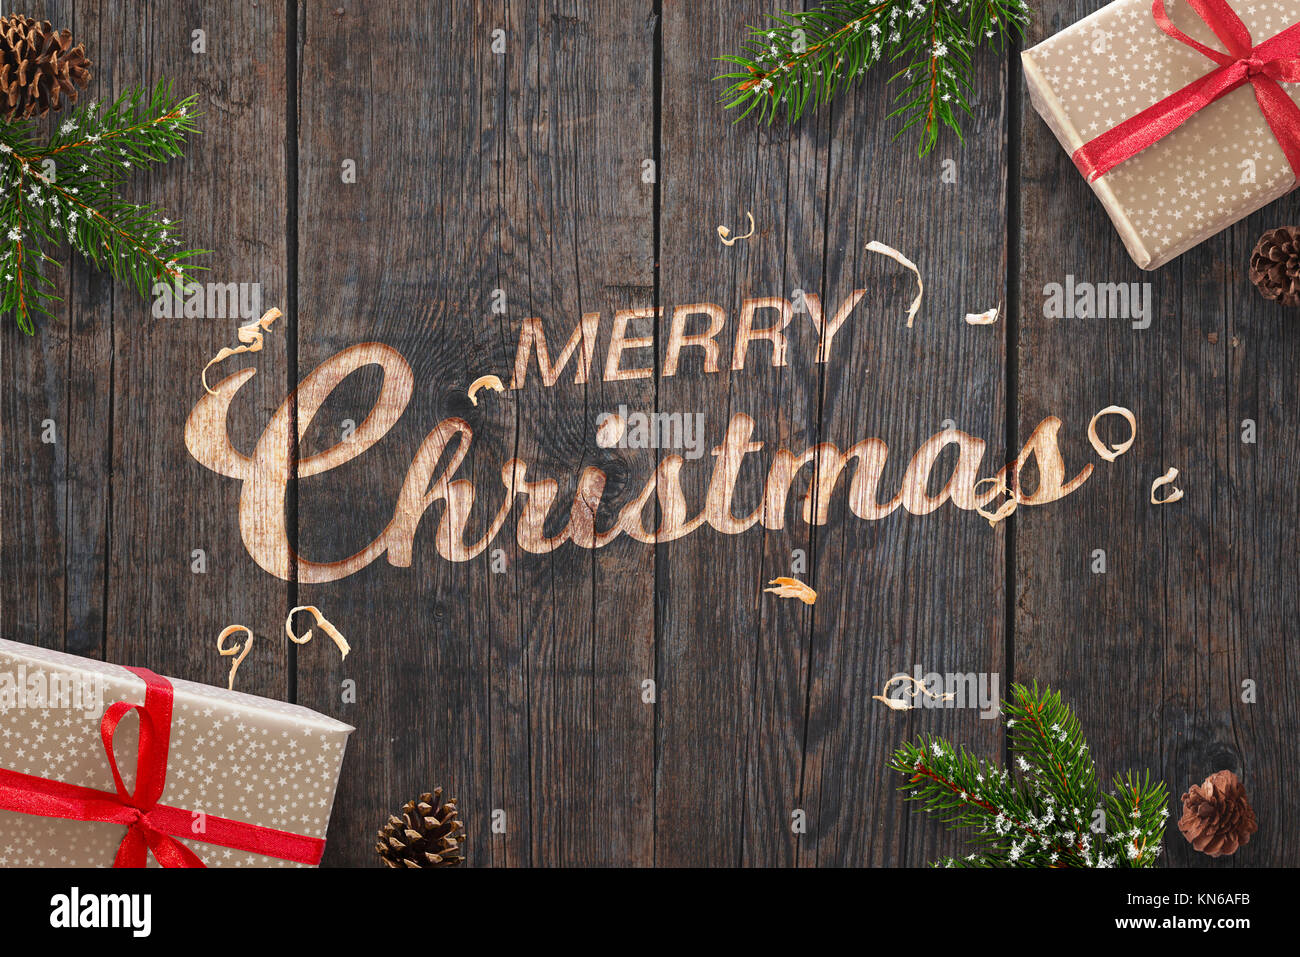 Christmas greeting text hand carved on dark wooden surface with Christmas decorations. Gifts, fir branches and pinecones - Stock Image